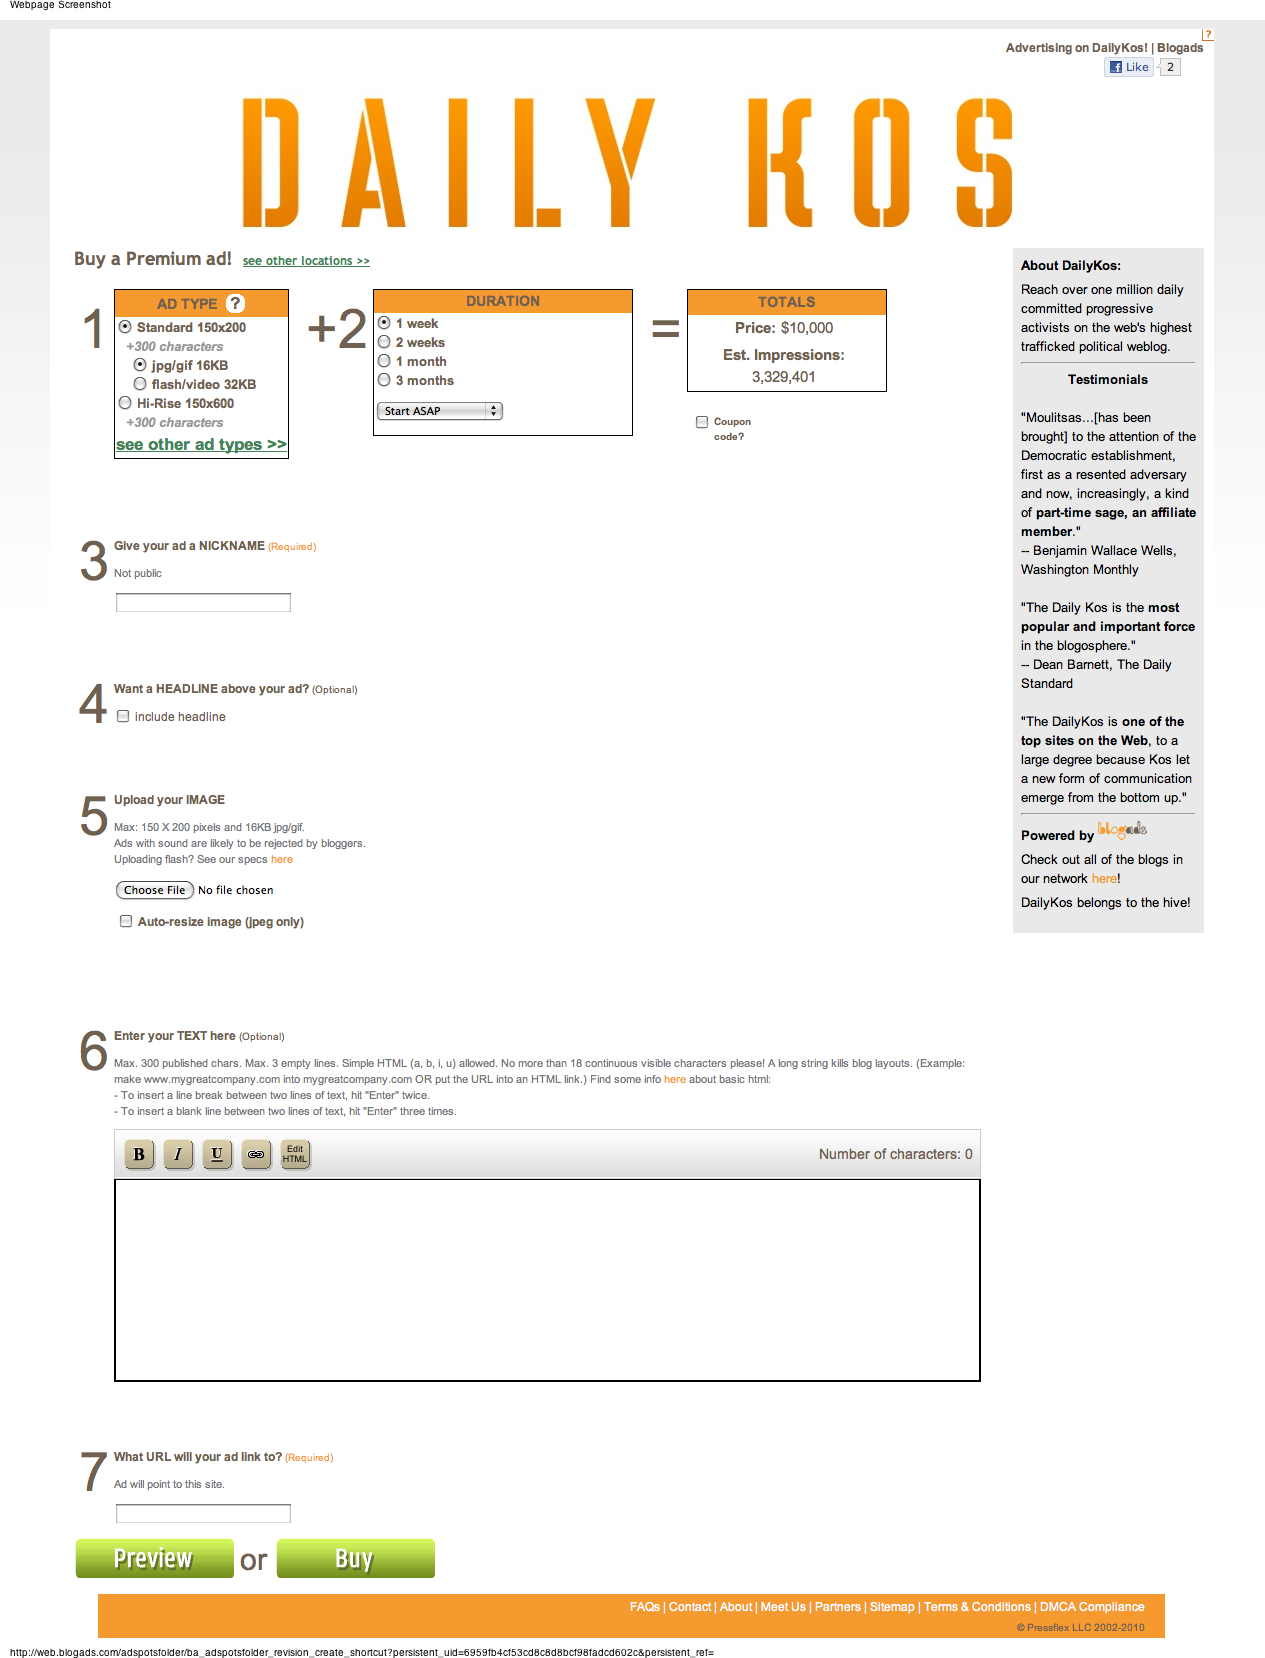 Advertise on DailyKos order form